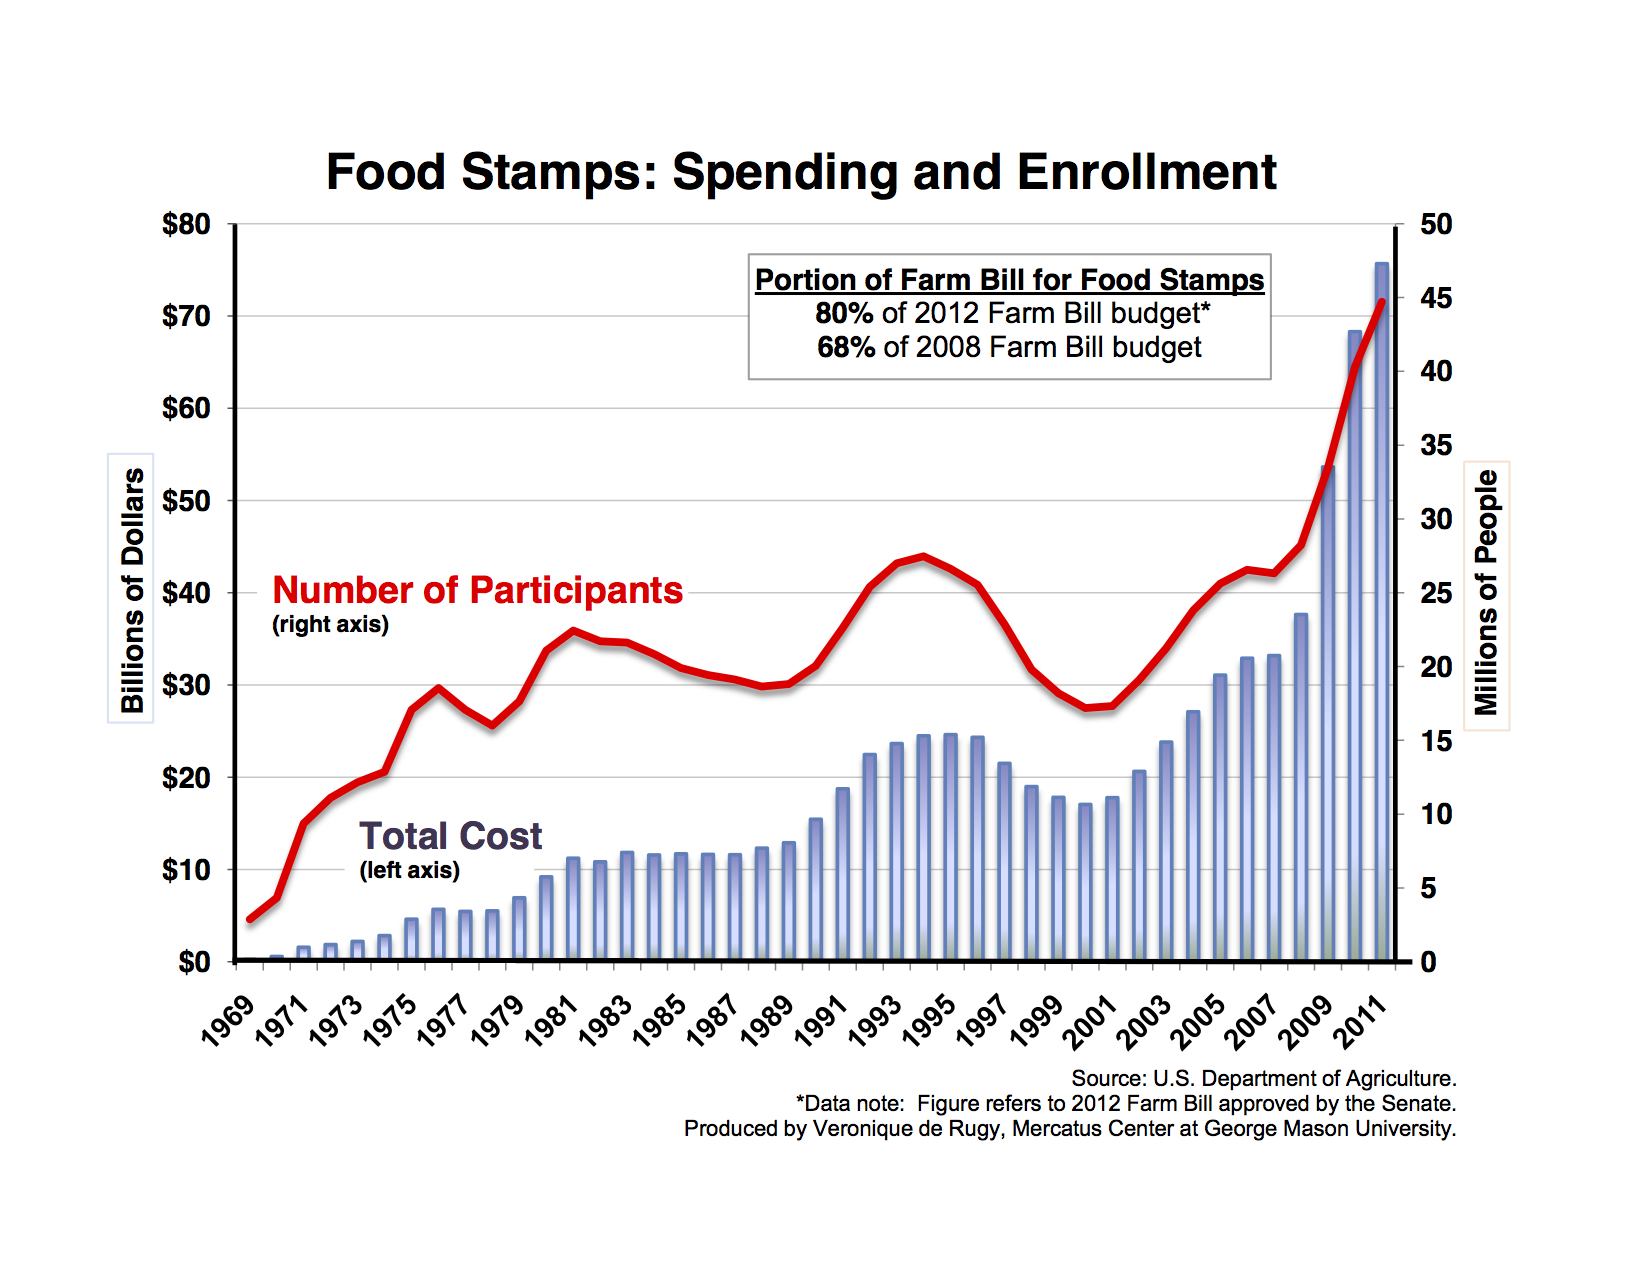 Food Stamp Spending and Enrollment Double in Five Years | Mercatus